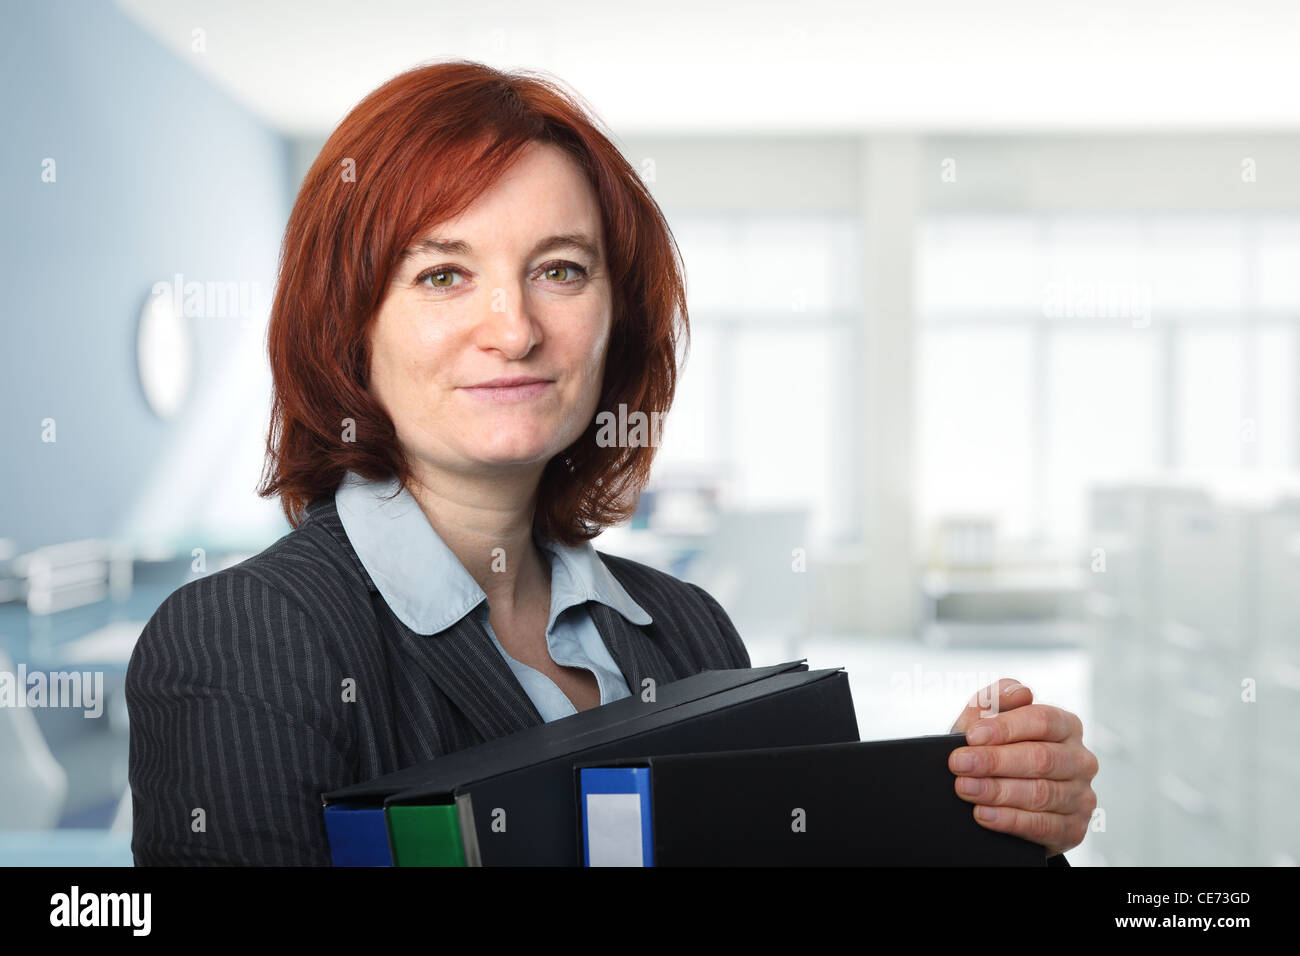 portrait of woman with file folder - Stock Image